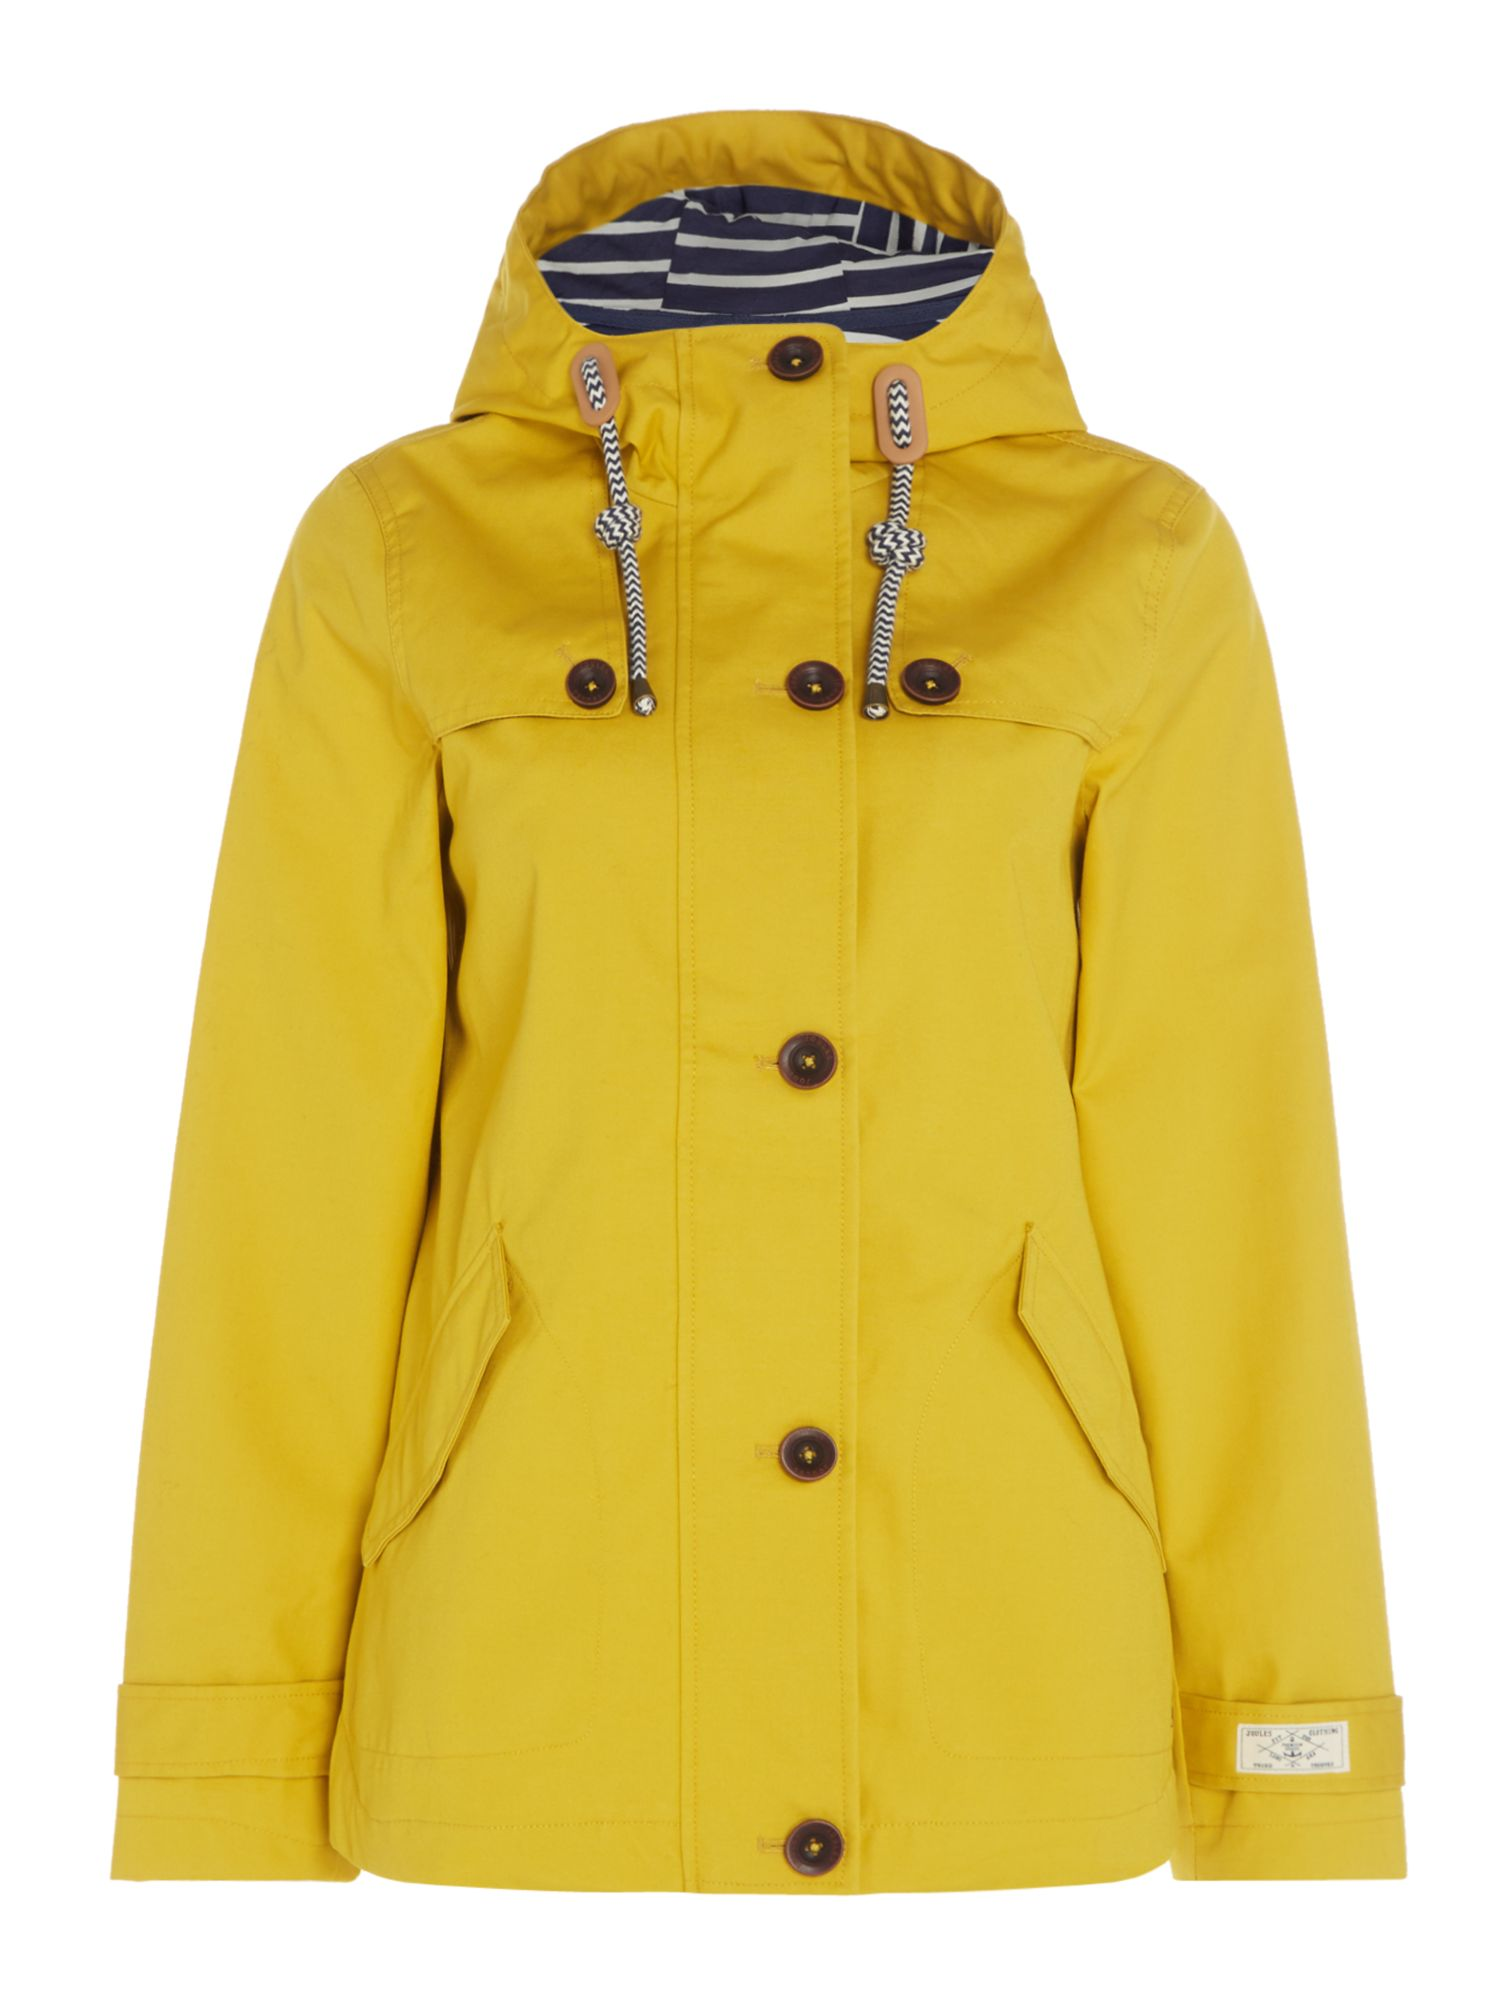 Joules Long sleeves hooded waterproof jacket, Antique Gold